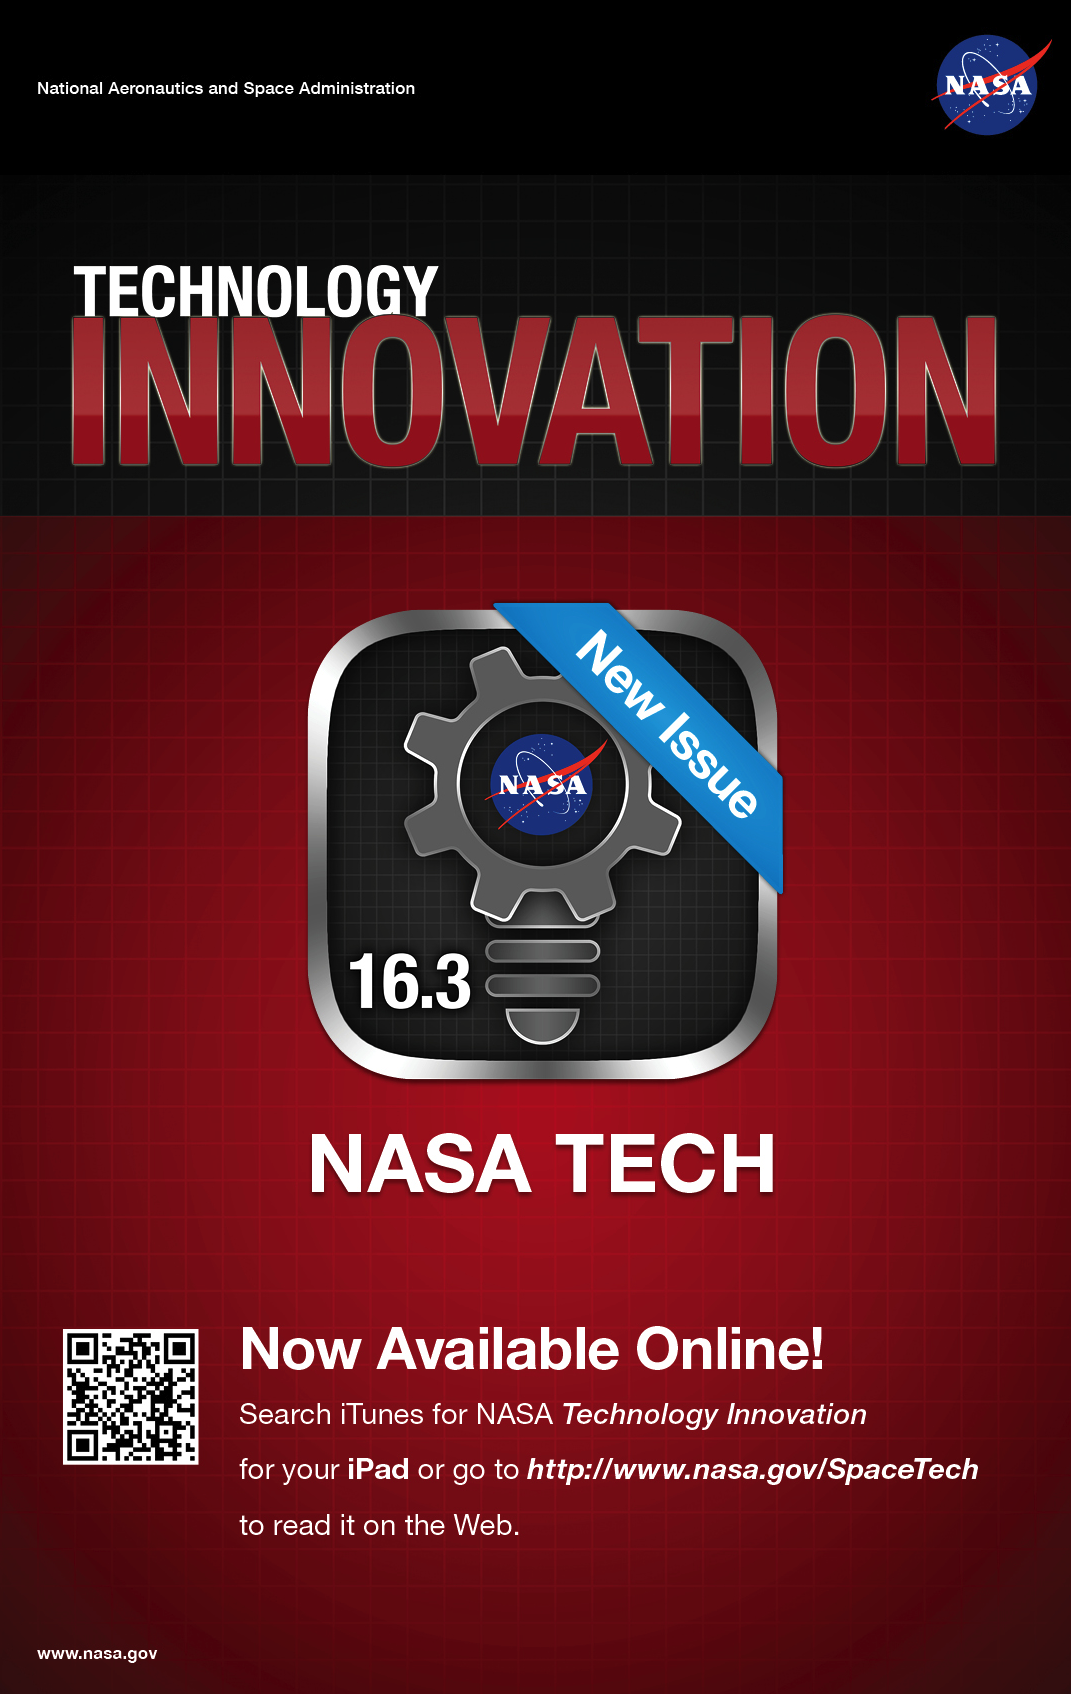 technological innovations by nasa - photo #16